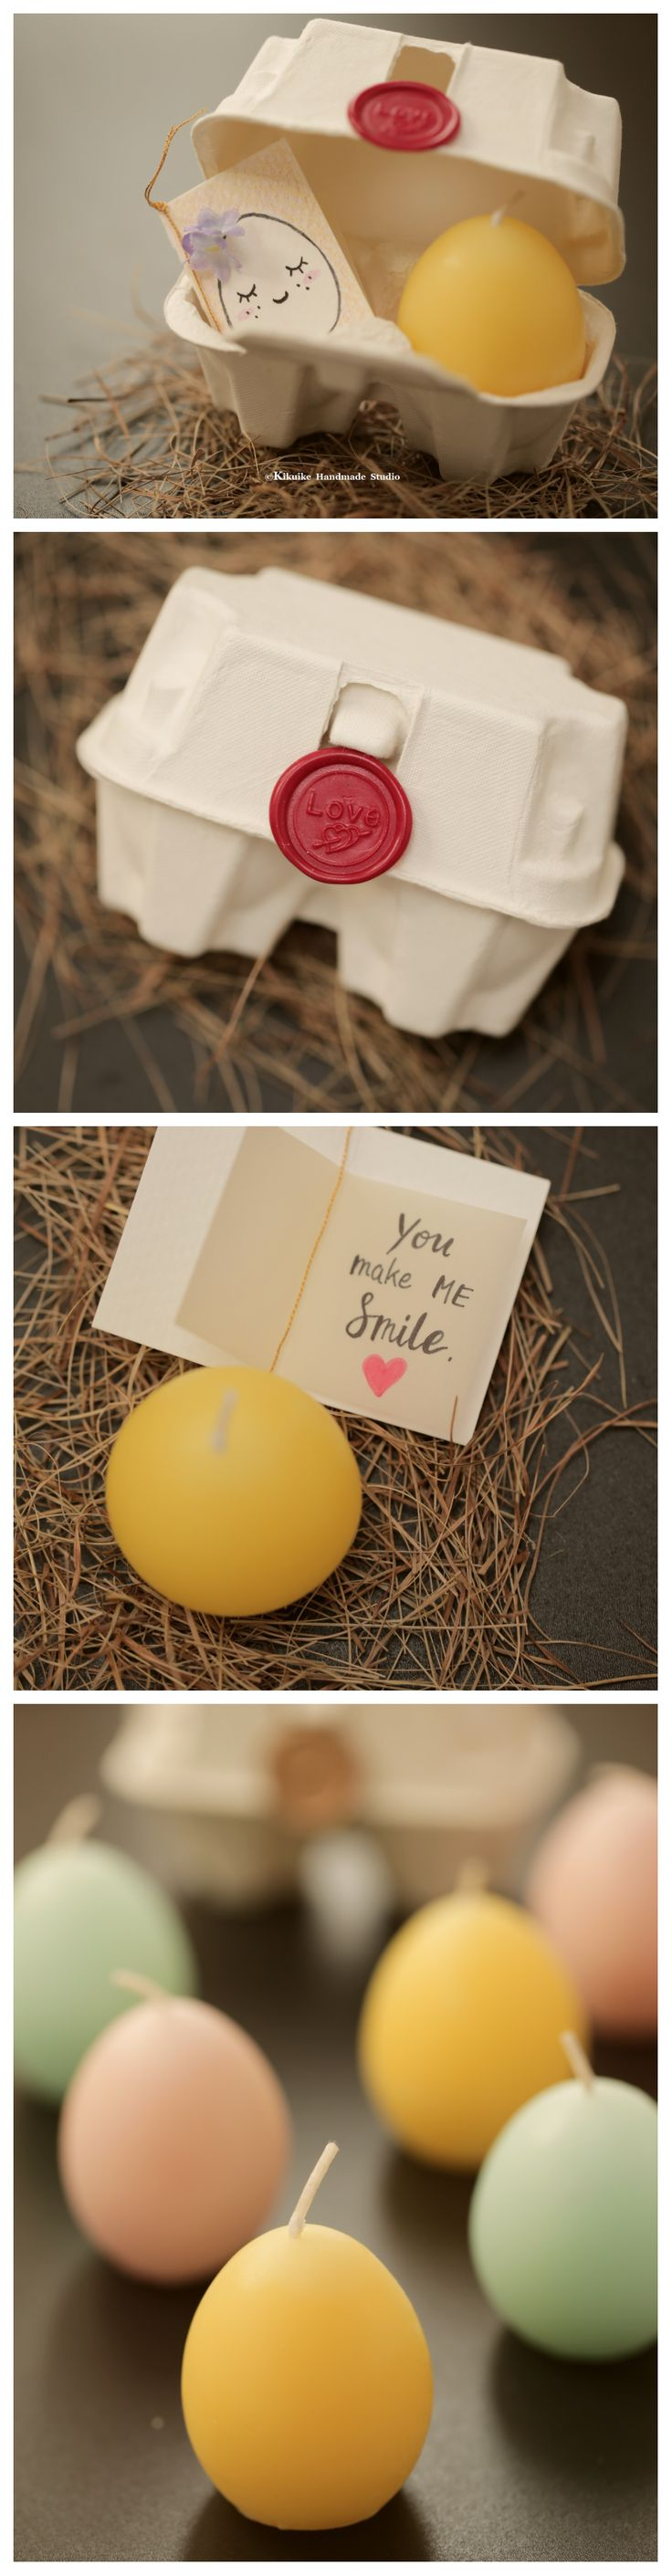 Handmade Egg Candle Matchbox card, candle Gift Box, Miniatures matchbox card, Valentine's Gift, cheer up box, Funny Love Card,Gift for her/him,Girlfri…